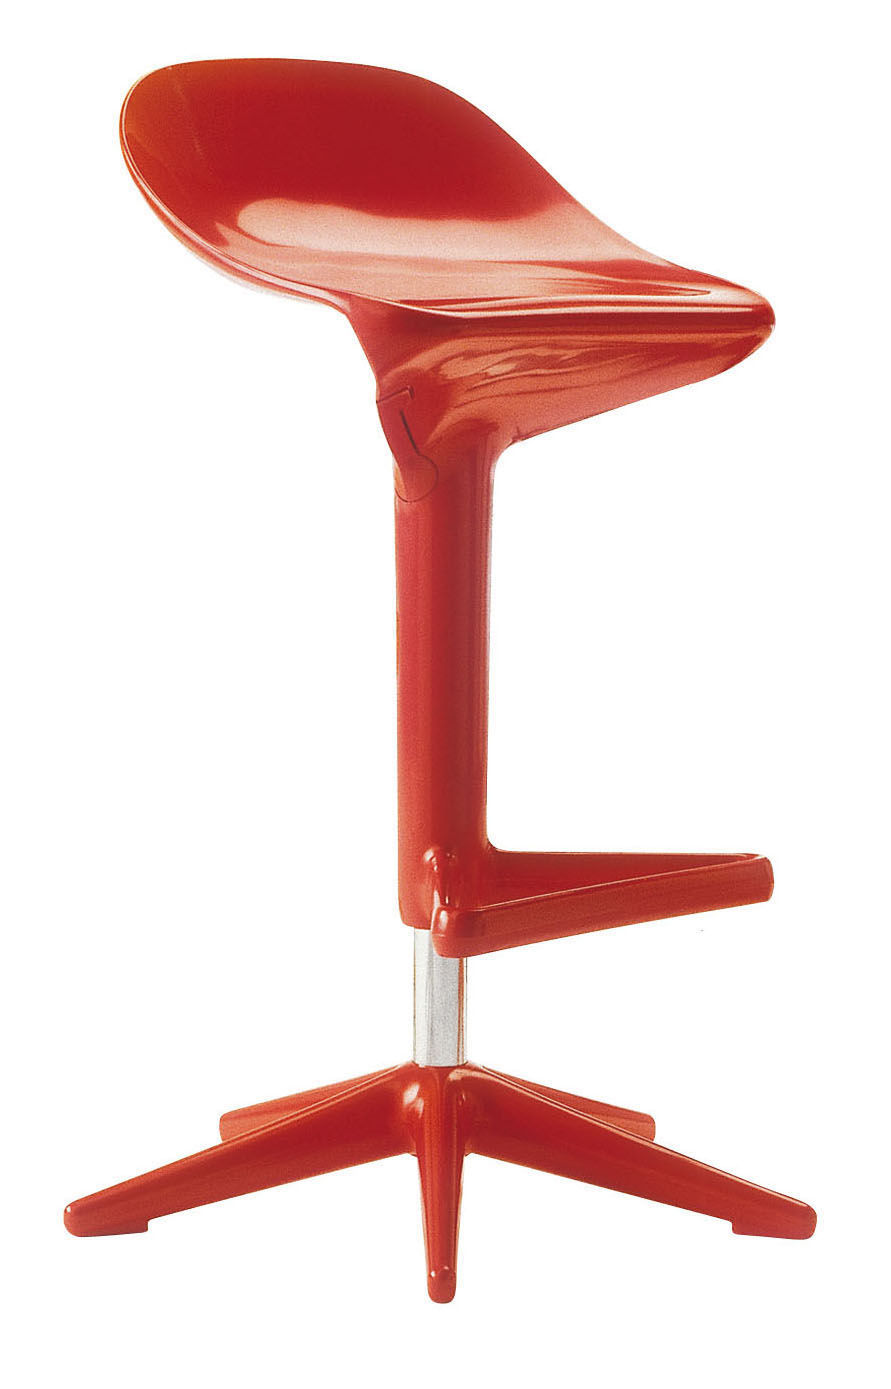 Furniture - Bar Stools - Spoon Adjustable bar stool - Pivoting - Plastic by Kartell - Red - Polypropylene